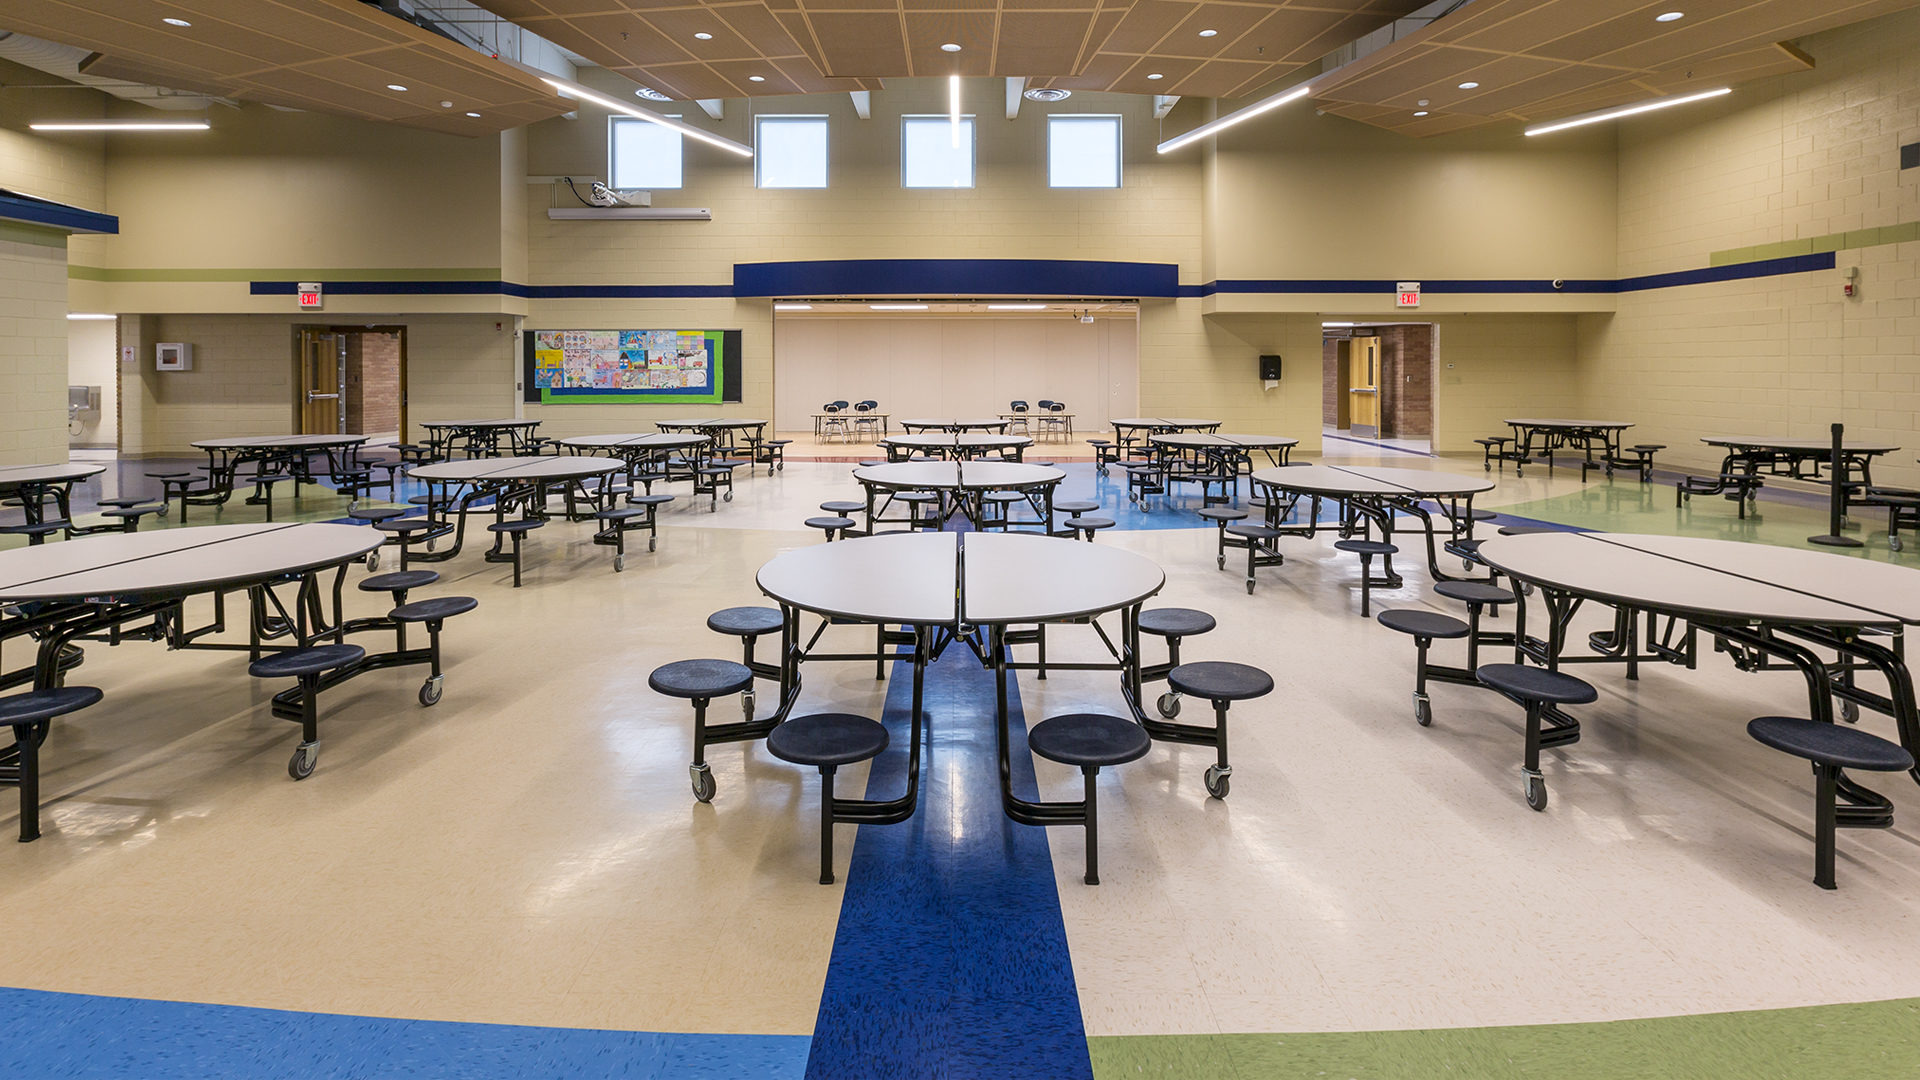 Clear Lake Elementary School Interior Cafeteria filled with Round Tables